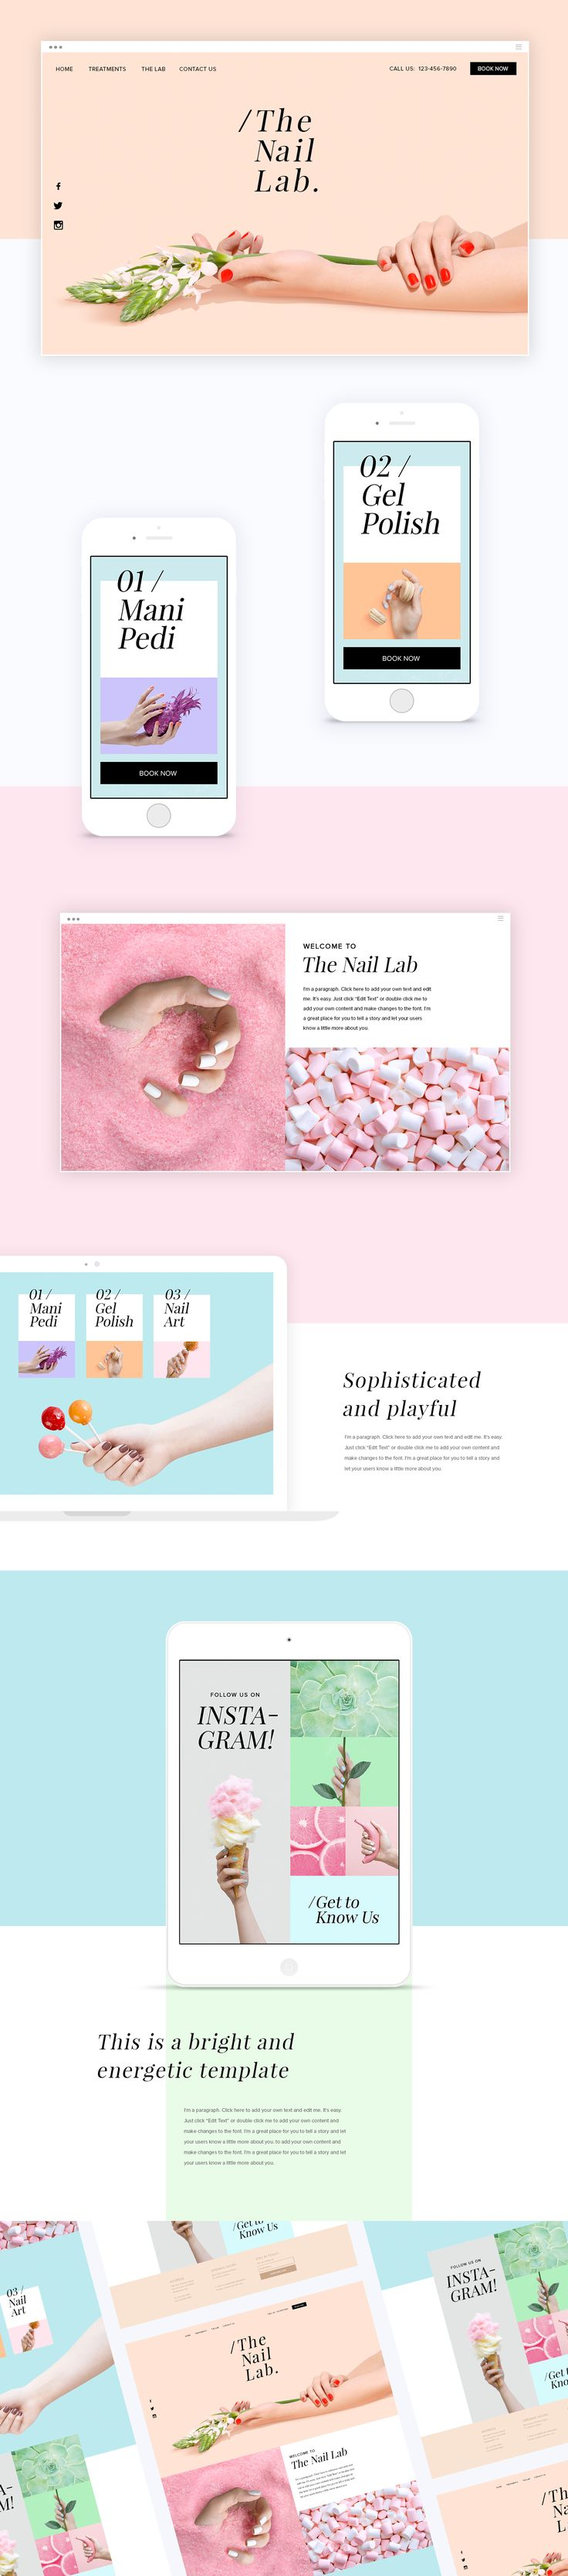 This is a bright and energetic template aimed to inspire and motivate our users. With a mixture of textures and sweet pastel colors, this template is just the right balance of sophisticated and playful. This template showcases images exclusivelyshot Wix …